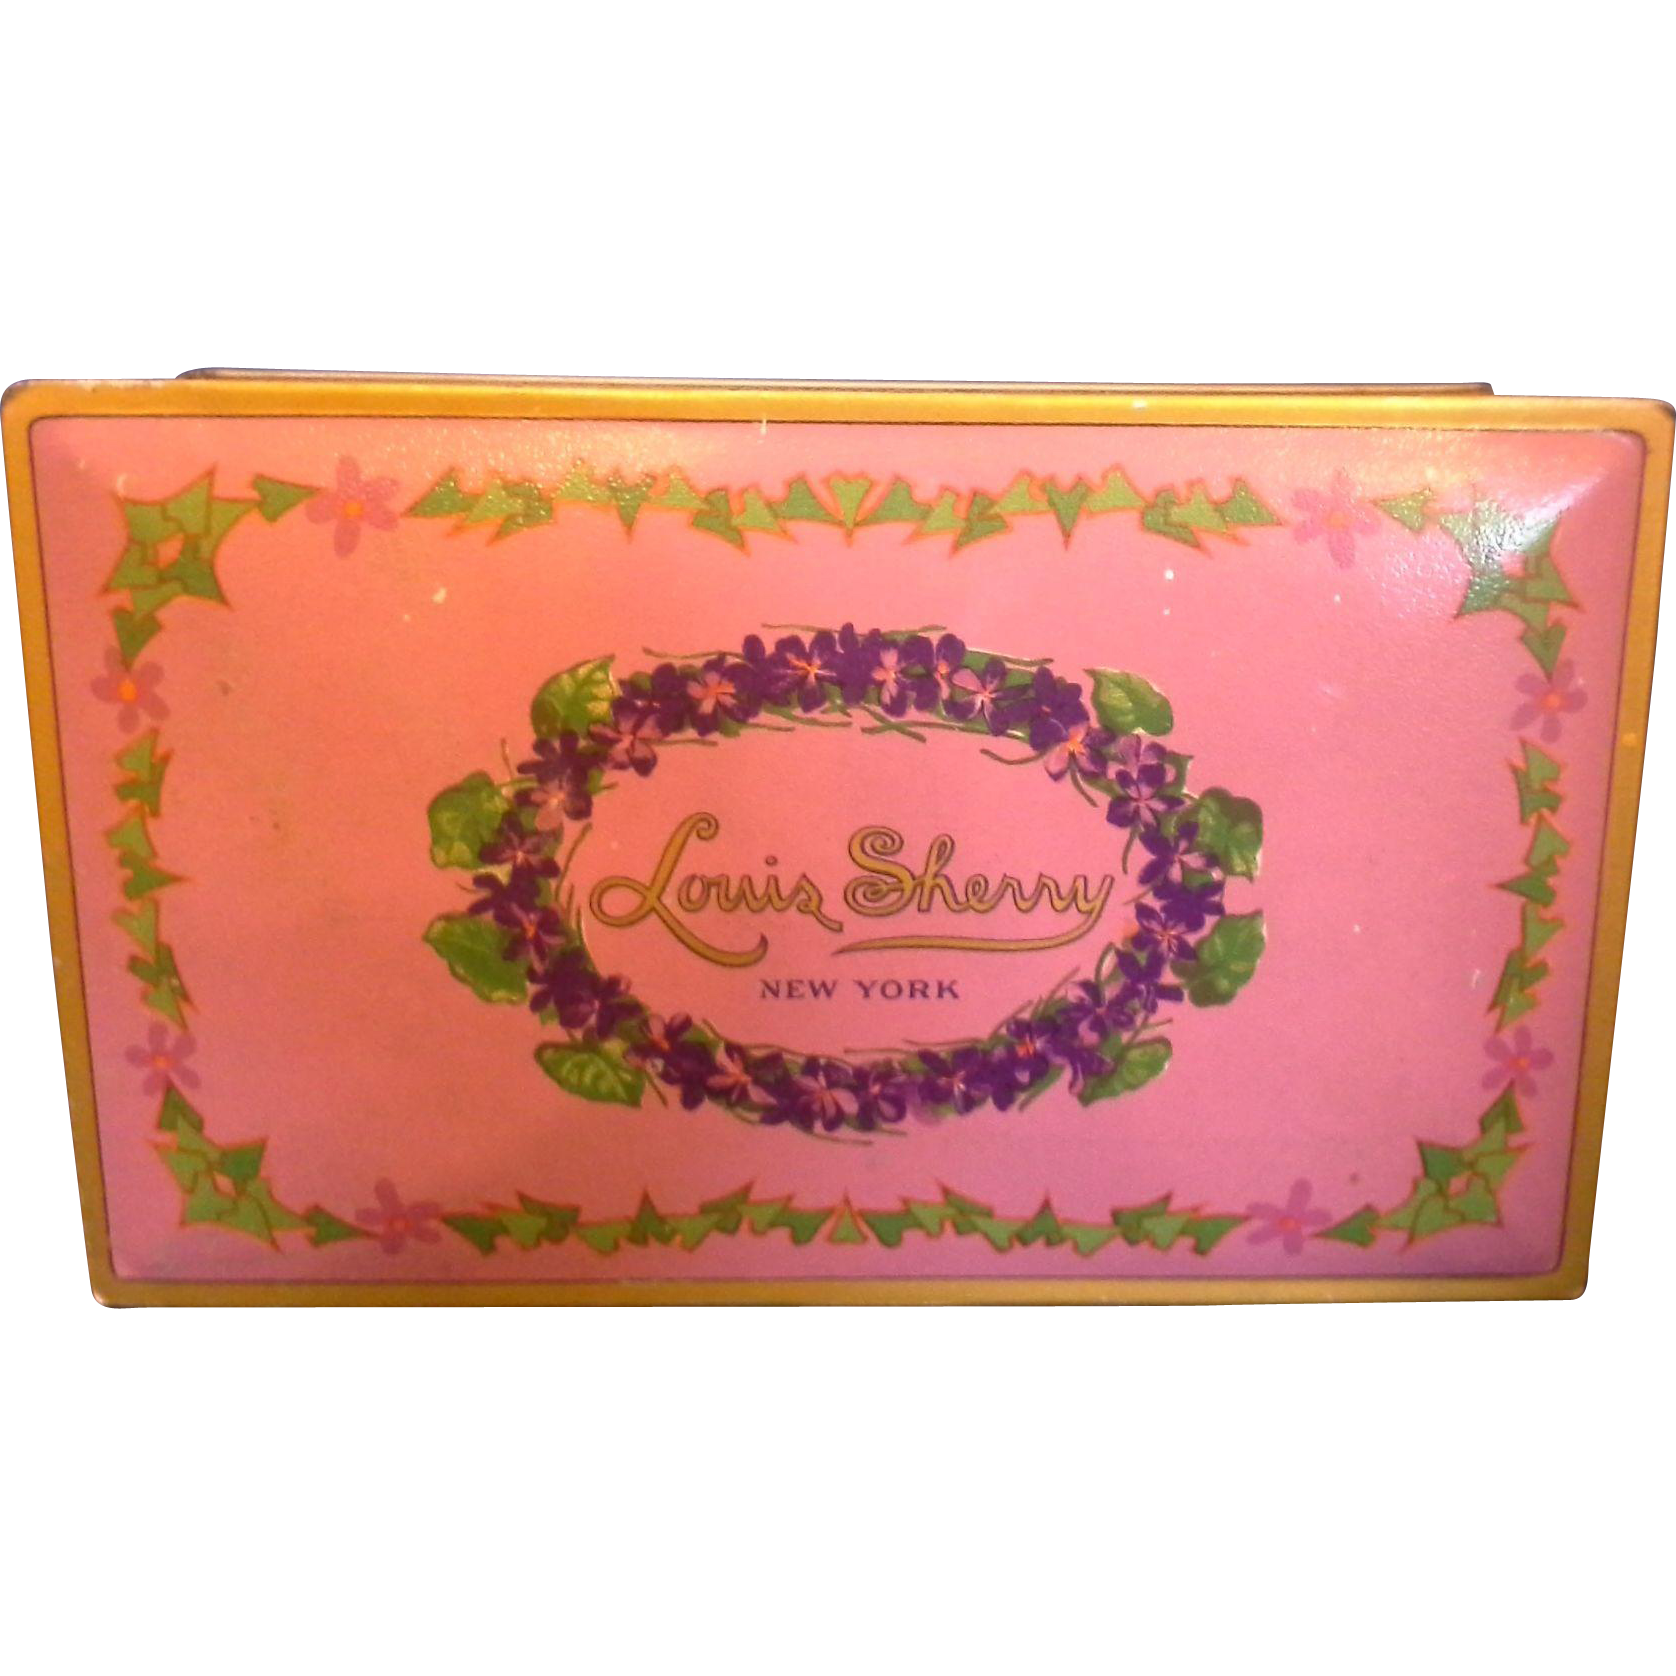 Beautebox Canco Louis Sherry Candy Box Tin Vintage 1920s Pink Purple